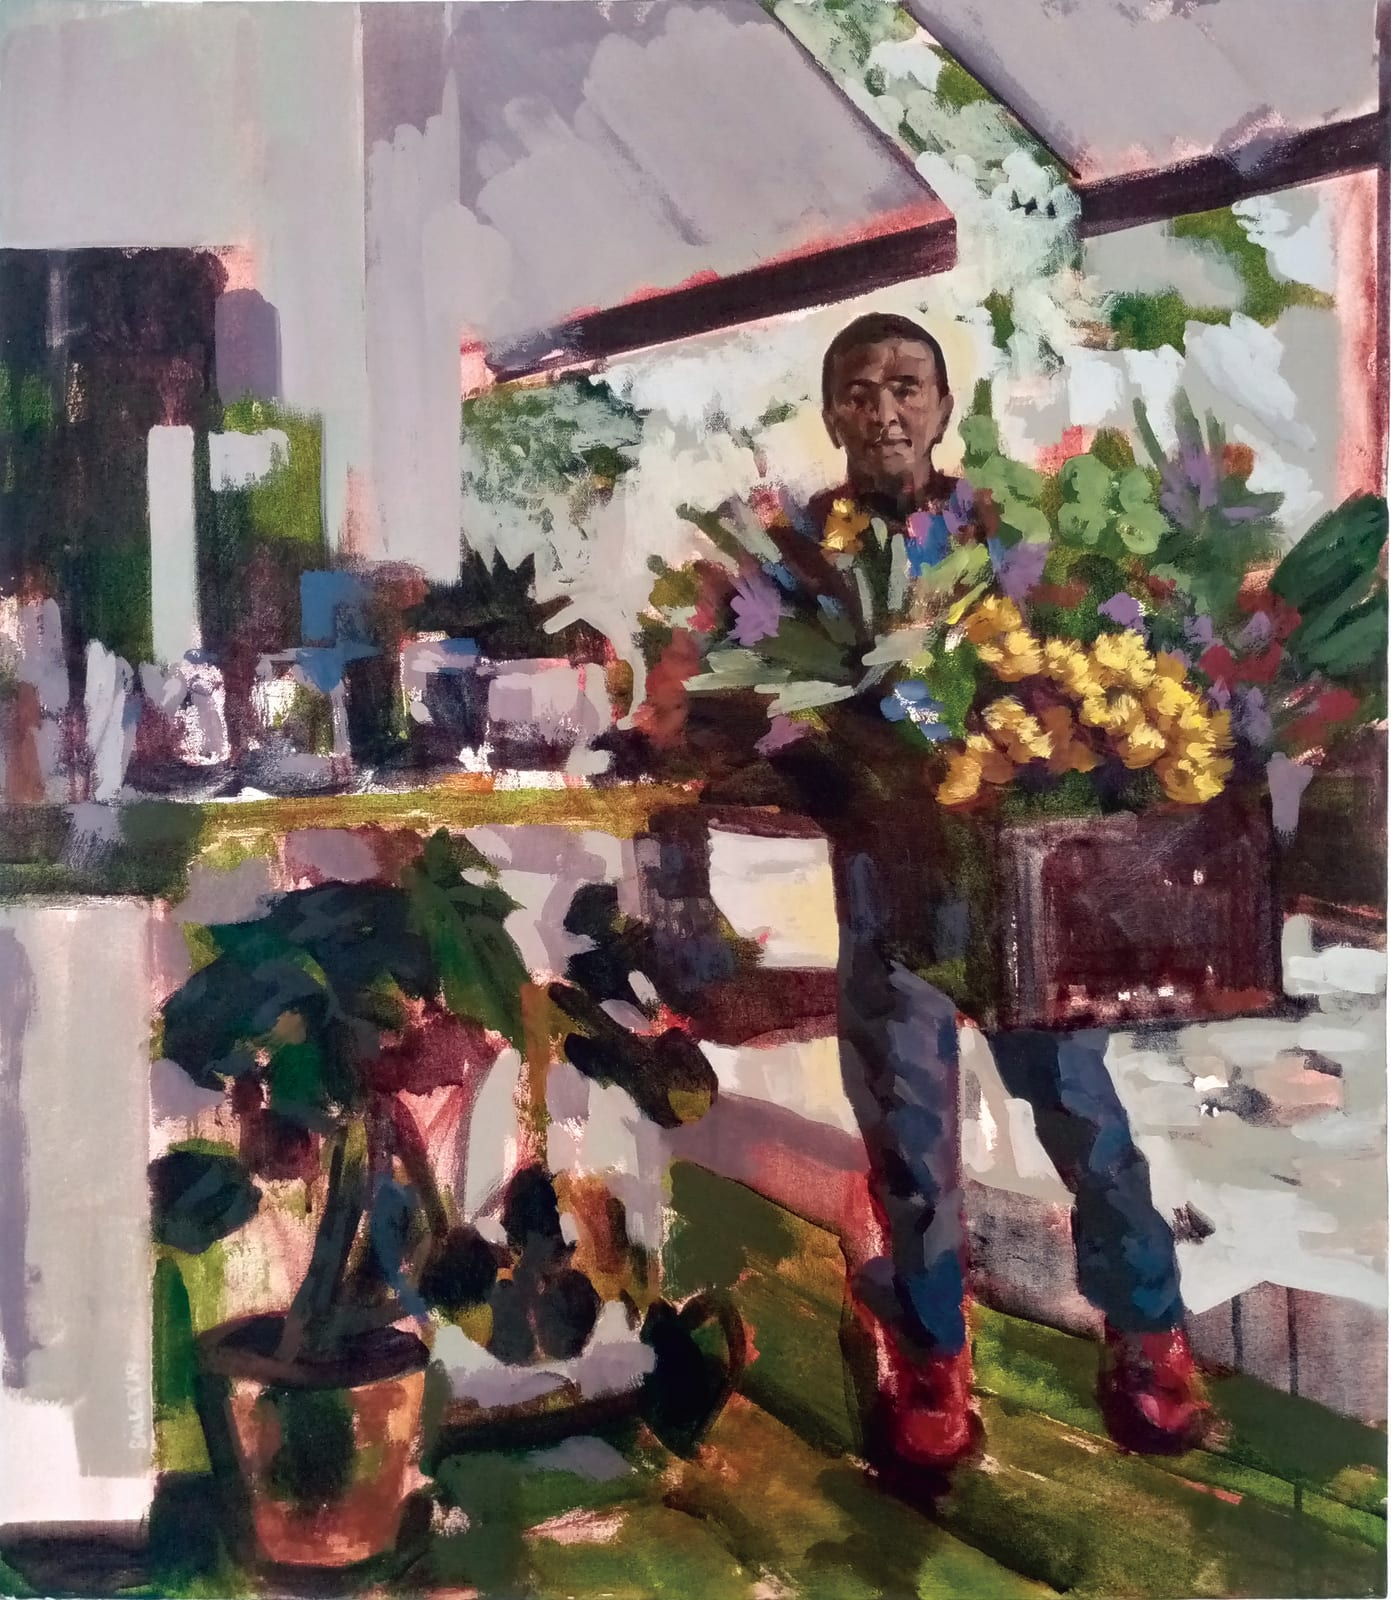 Raél Jero Salley, Flower Sale, 2019